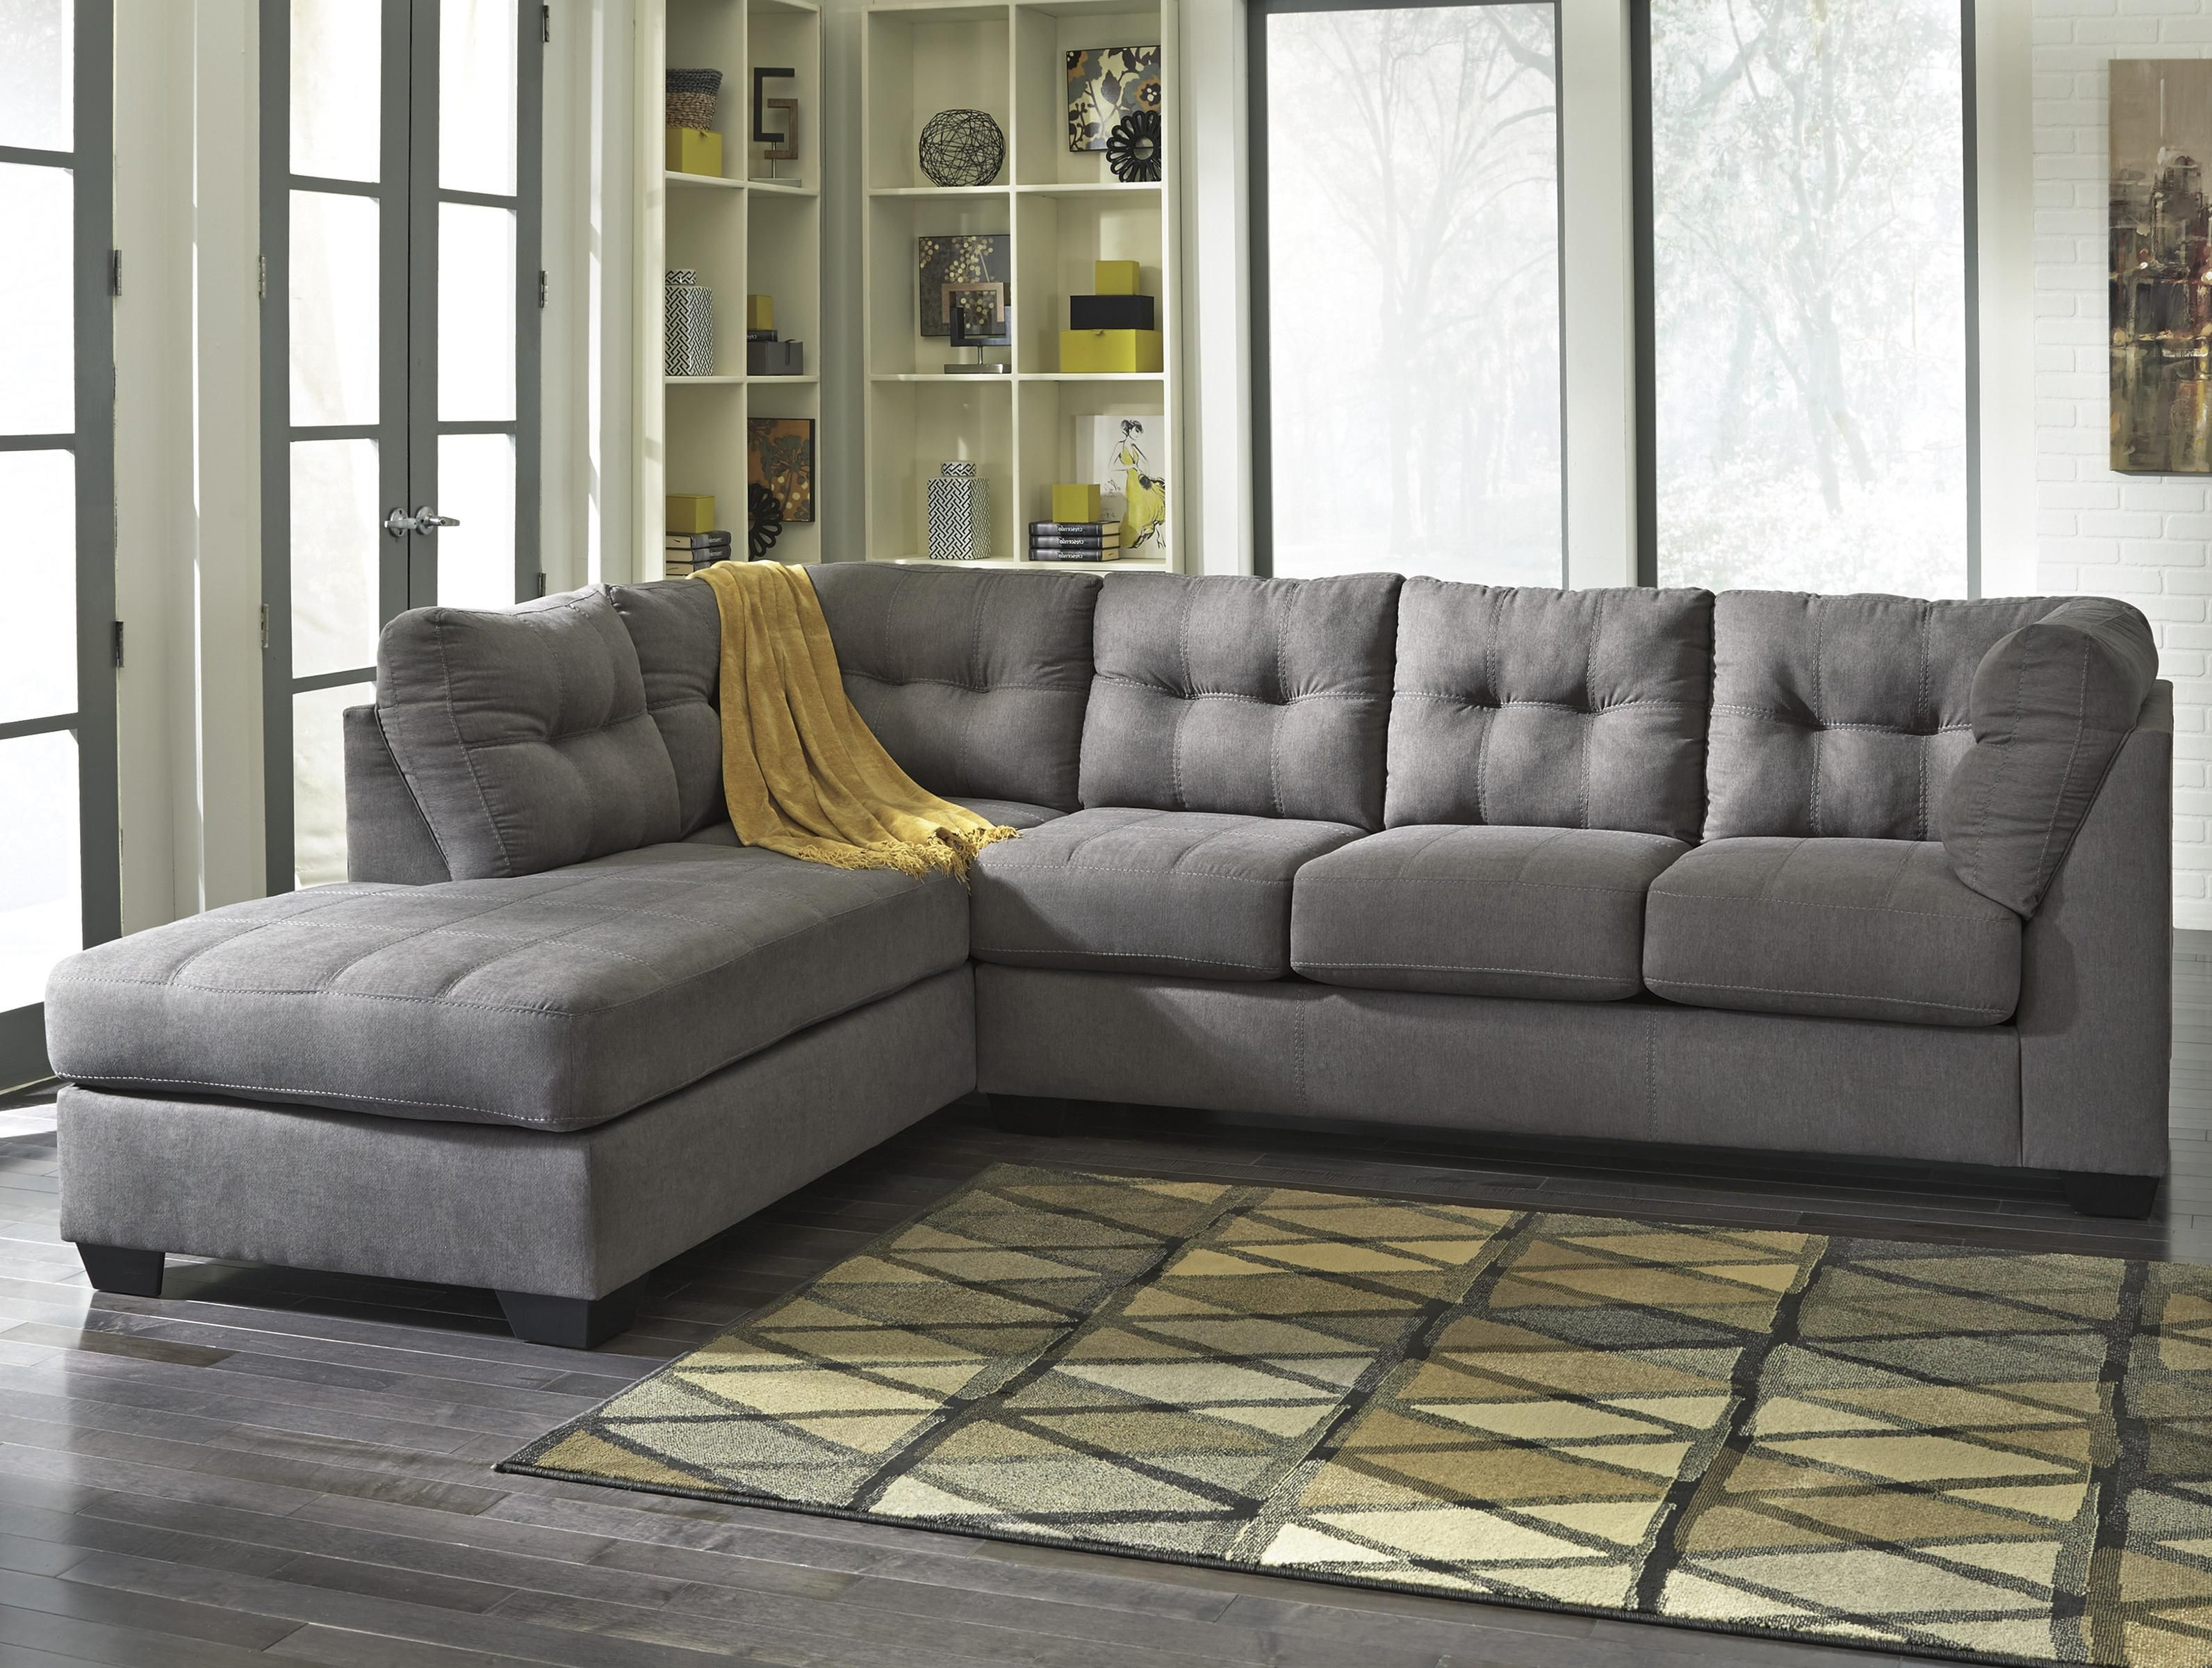 Meubles Ashley Divan Maier Charcoal 2 Piece Sectional With Left Chaise By Benchcraft